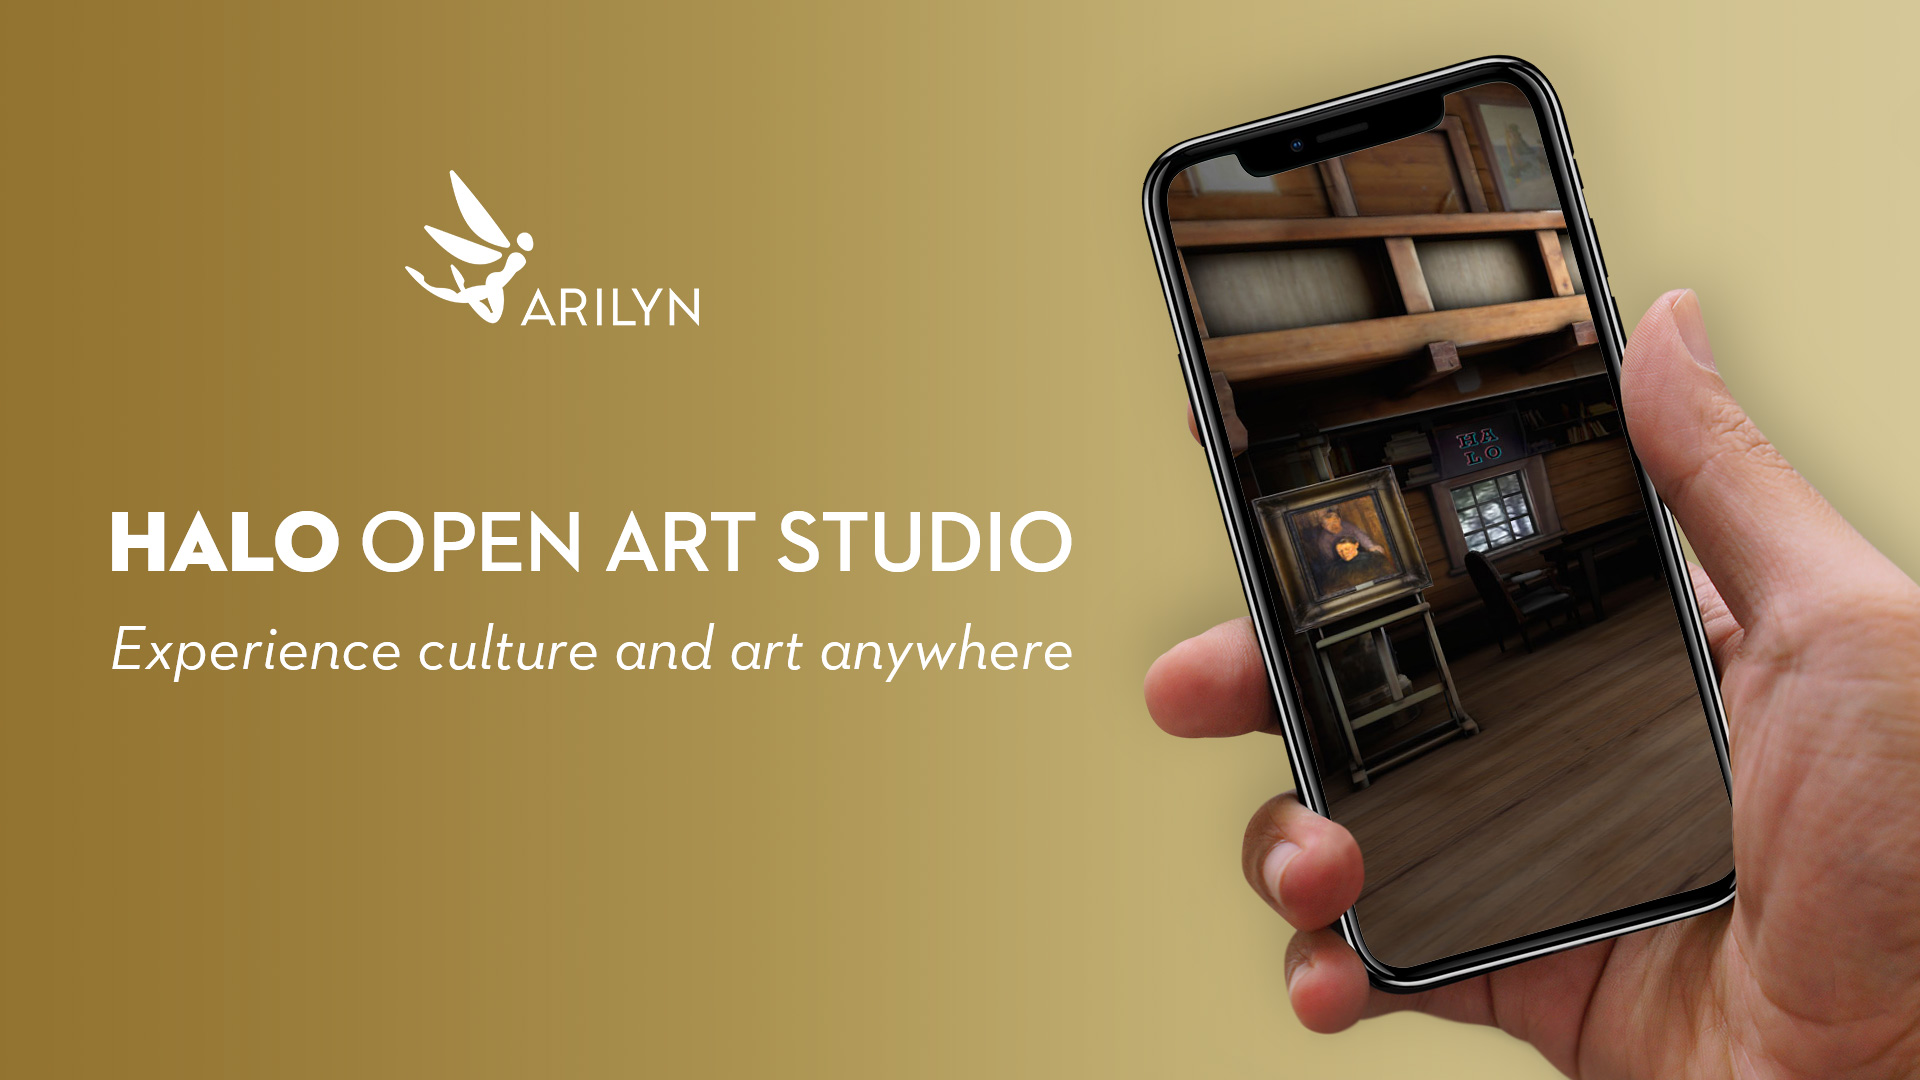 HALO Open Art Studio brings art experience right to your living room